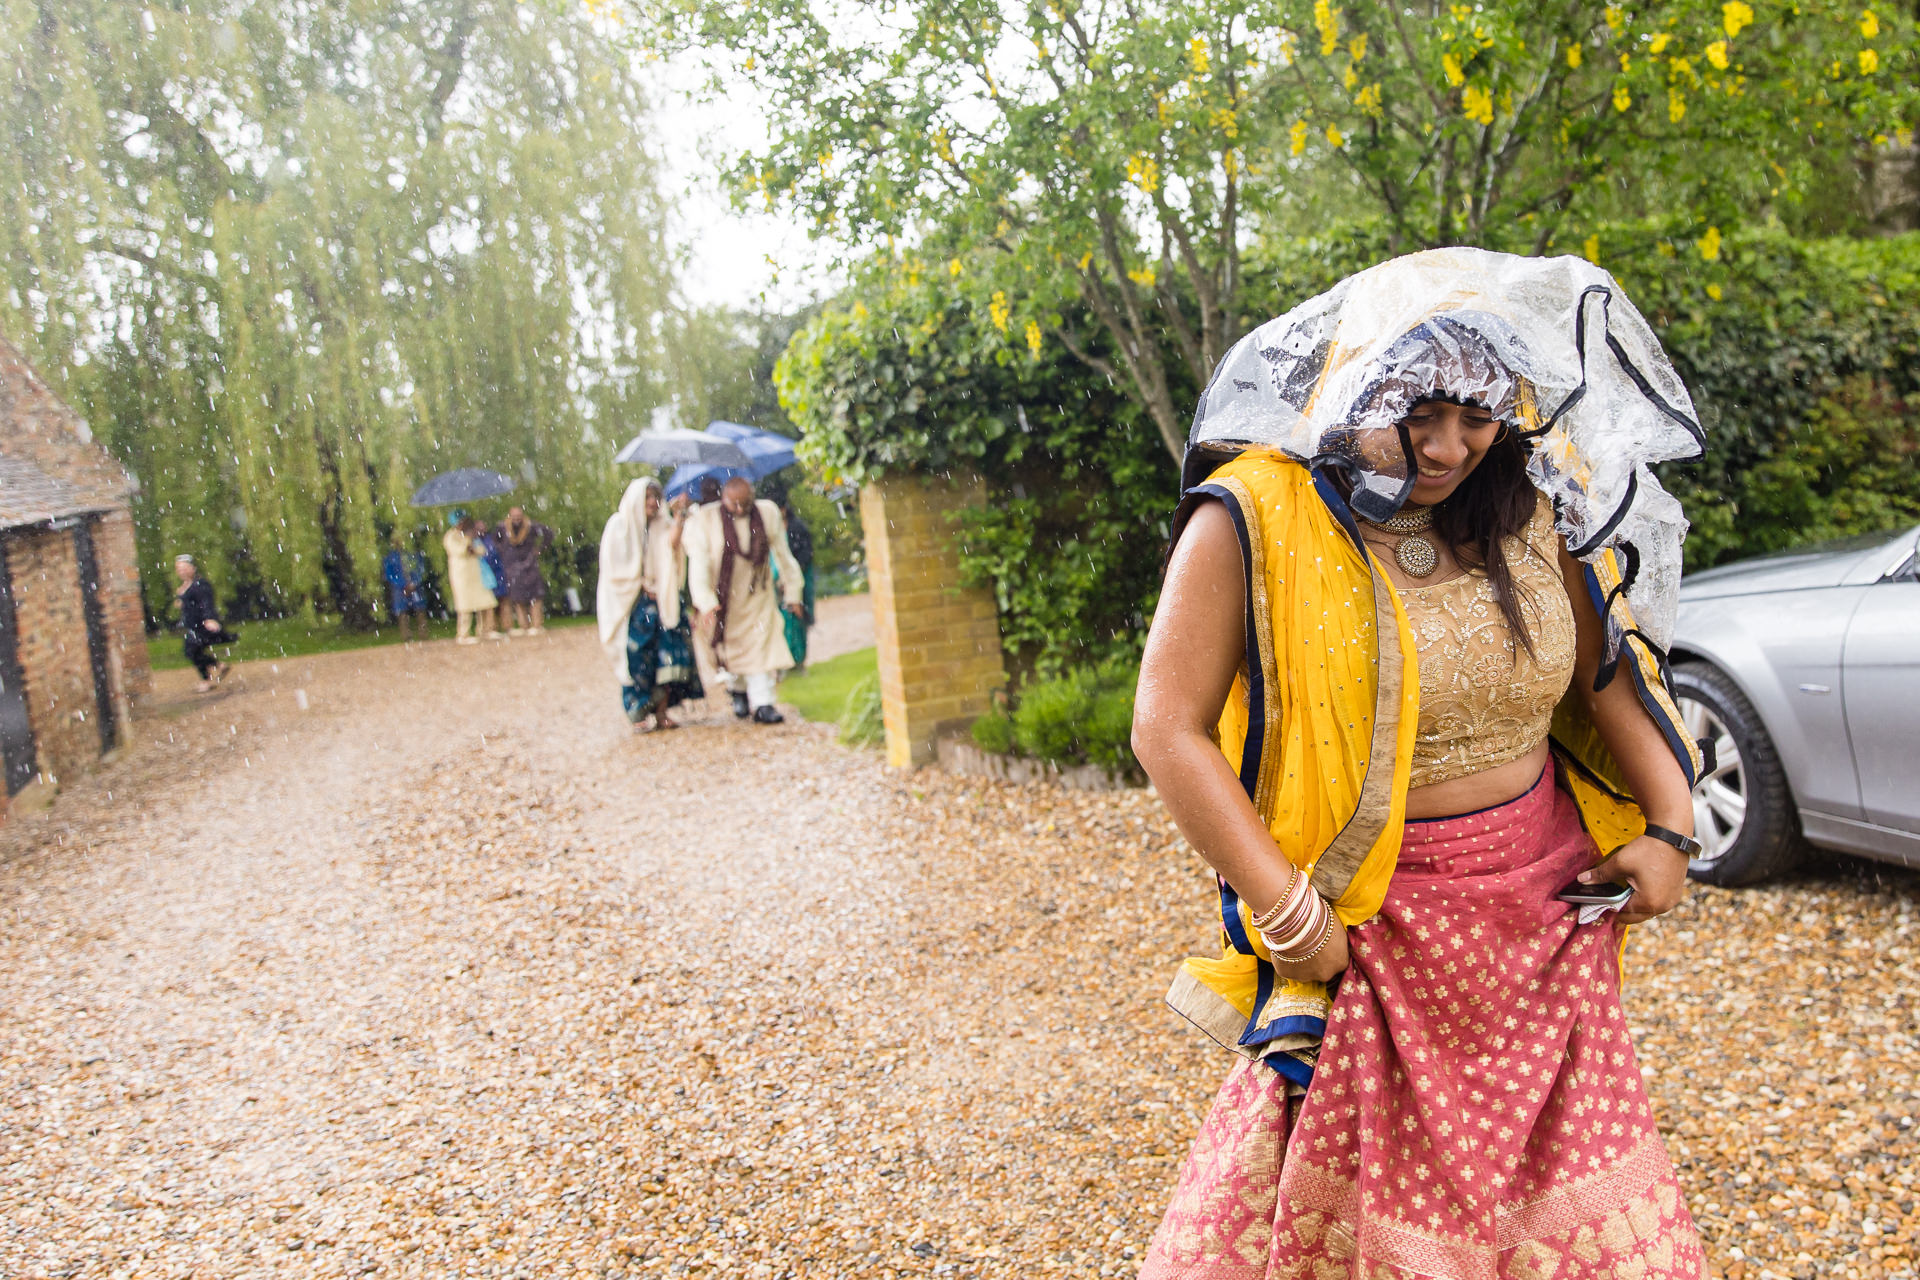 Asian wedding guests arriving for wedding in the rain